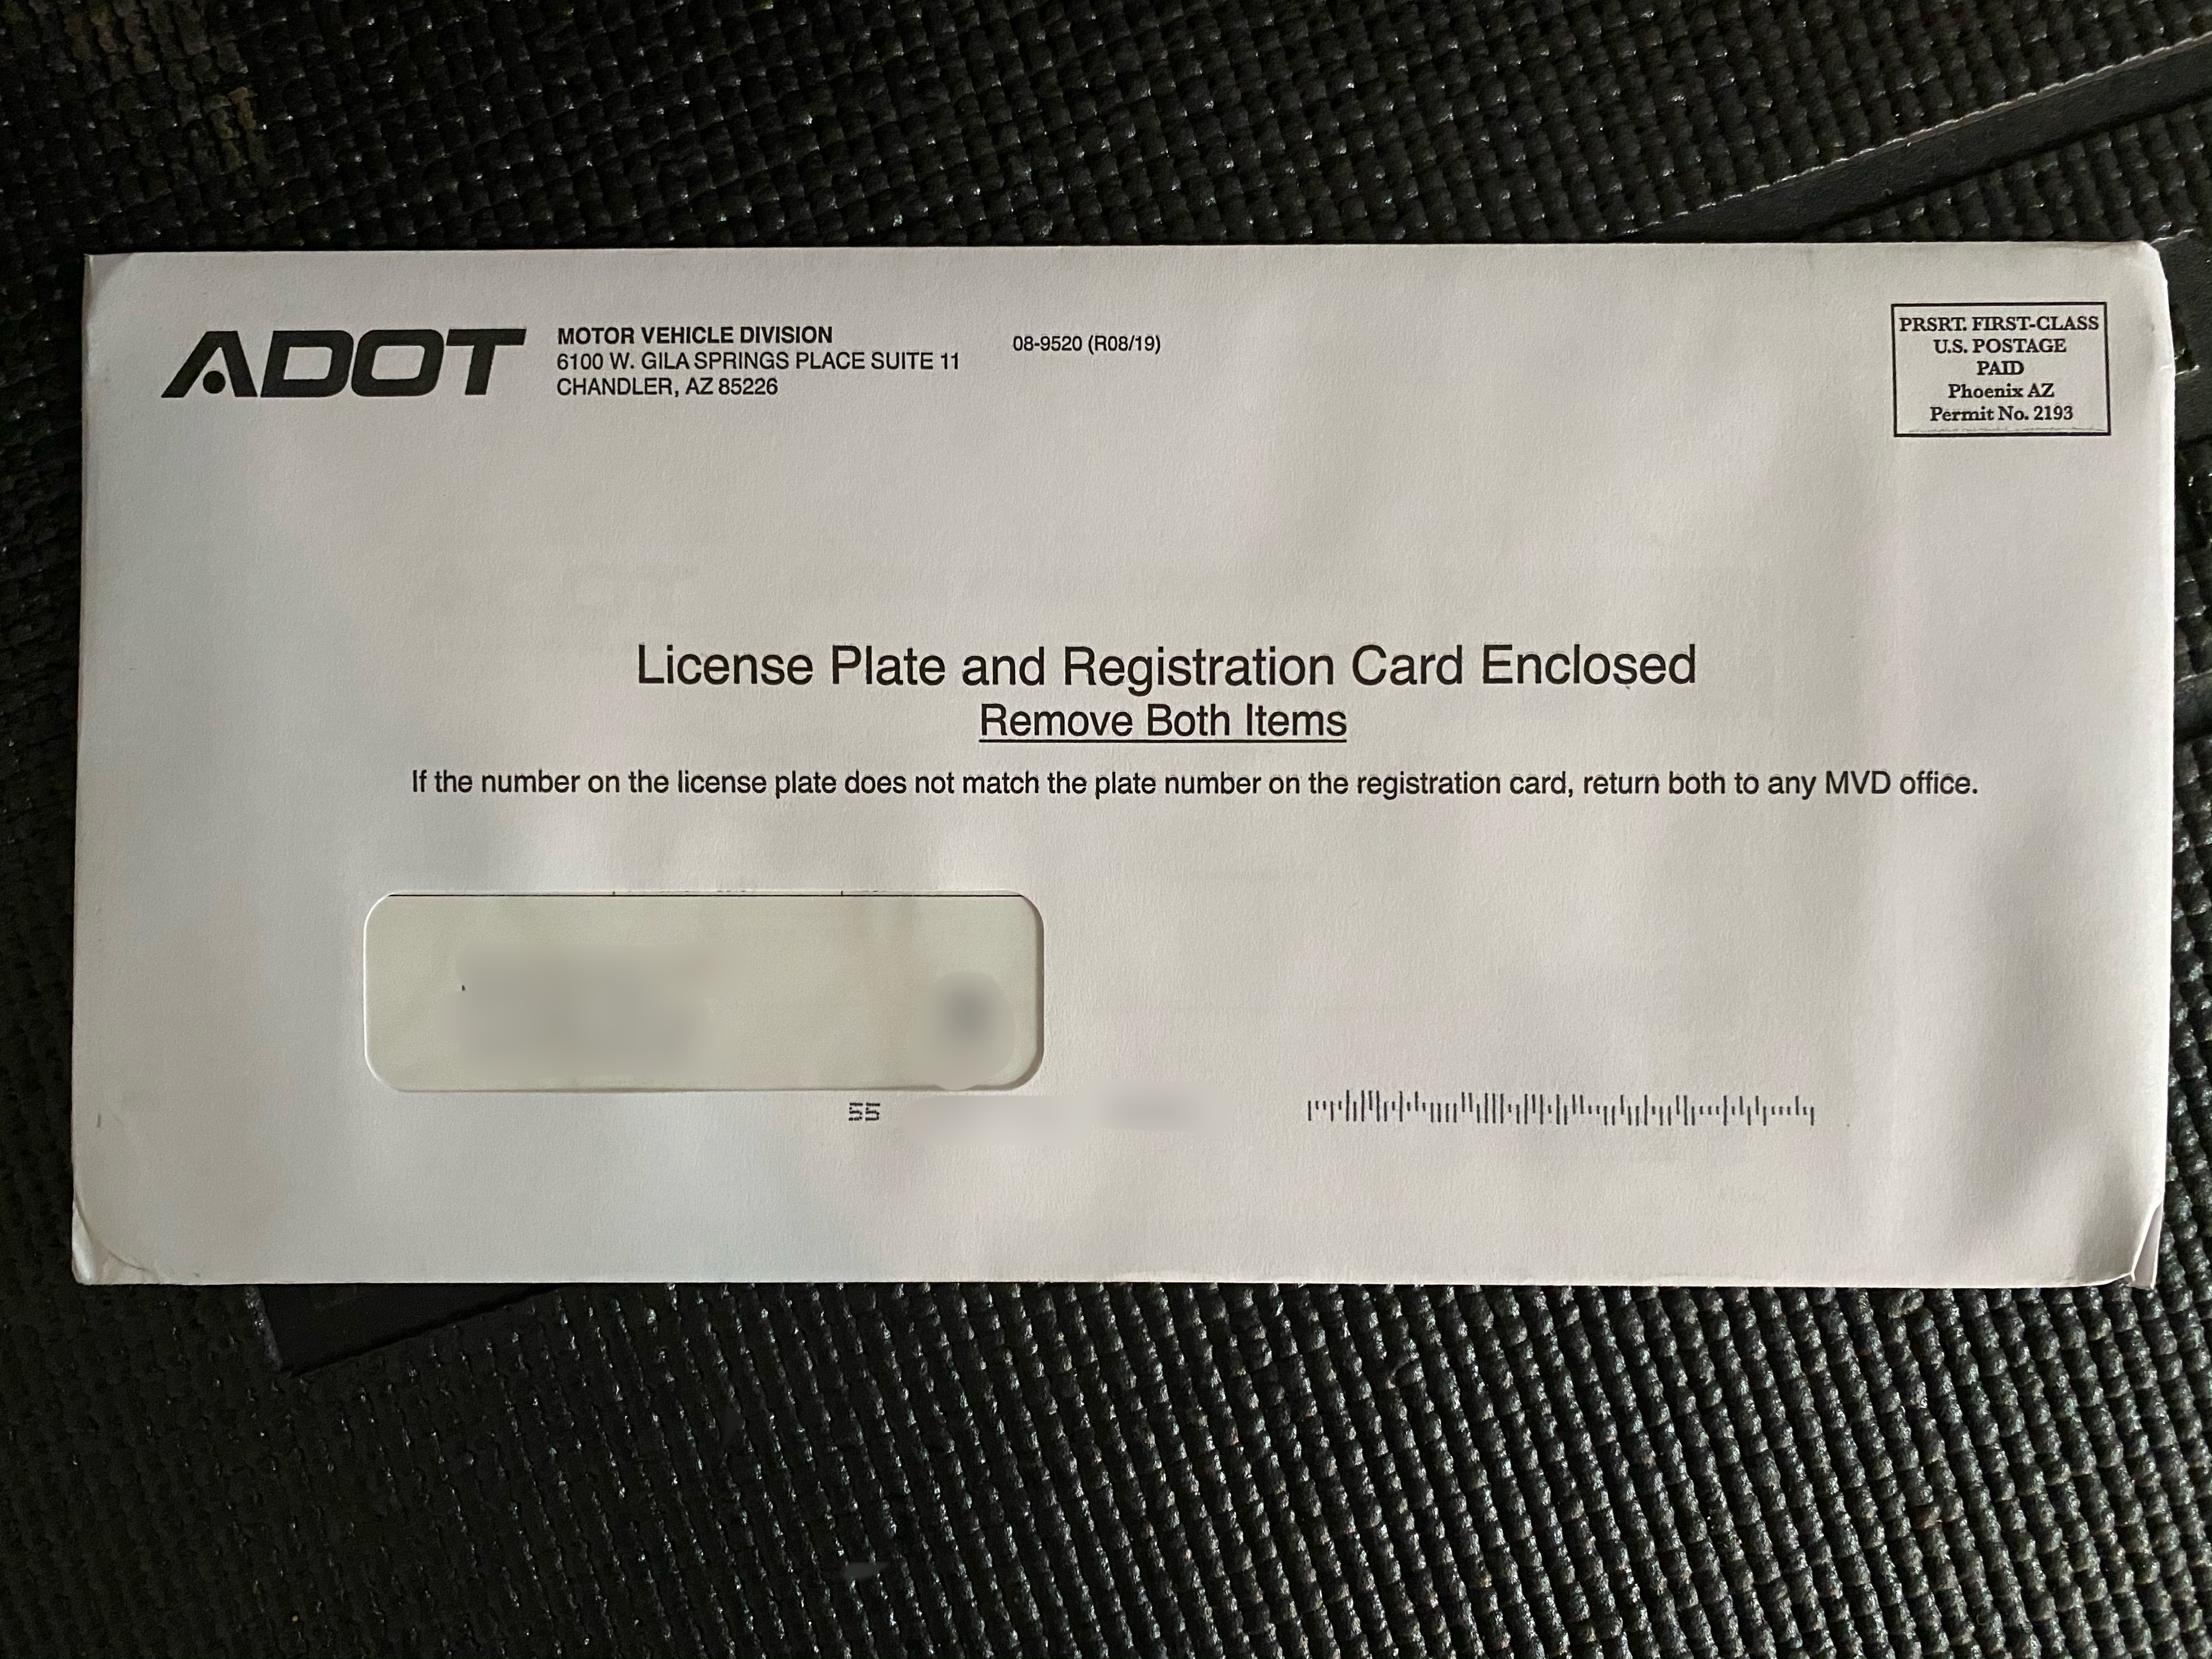 Plate and tab envelope